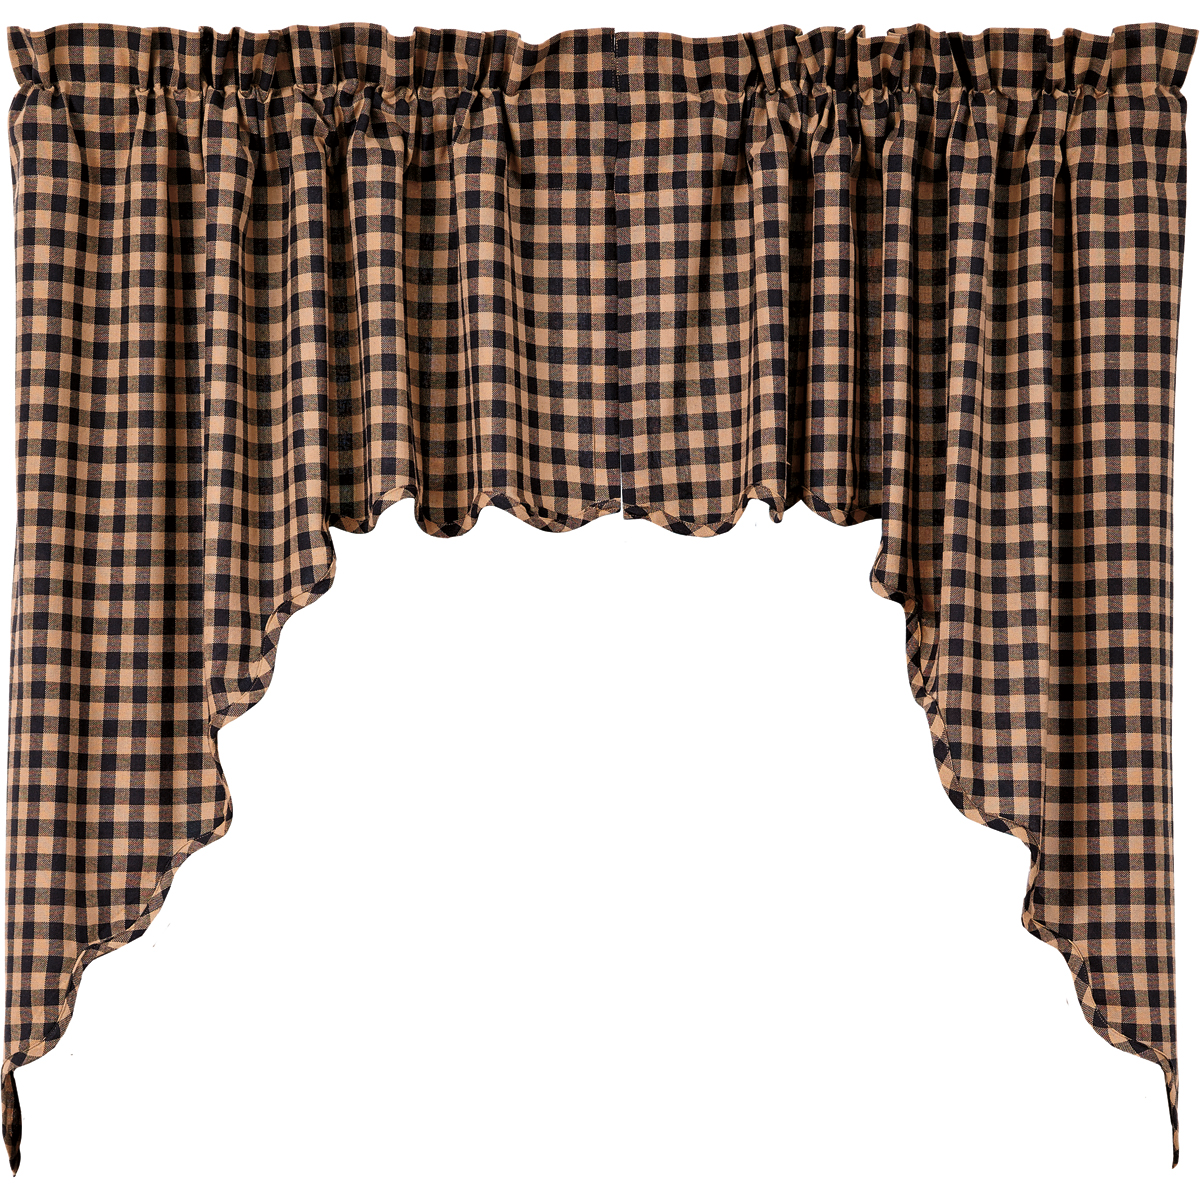 BLACK CHECK Swag - 36x36x16 - Set of 2 - Raven and Khaki  - VHC Brands